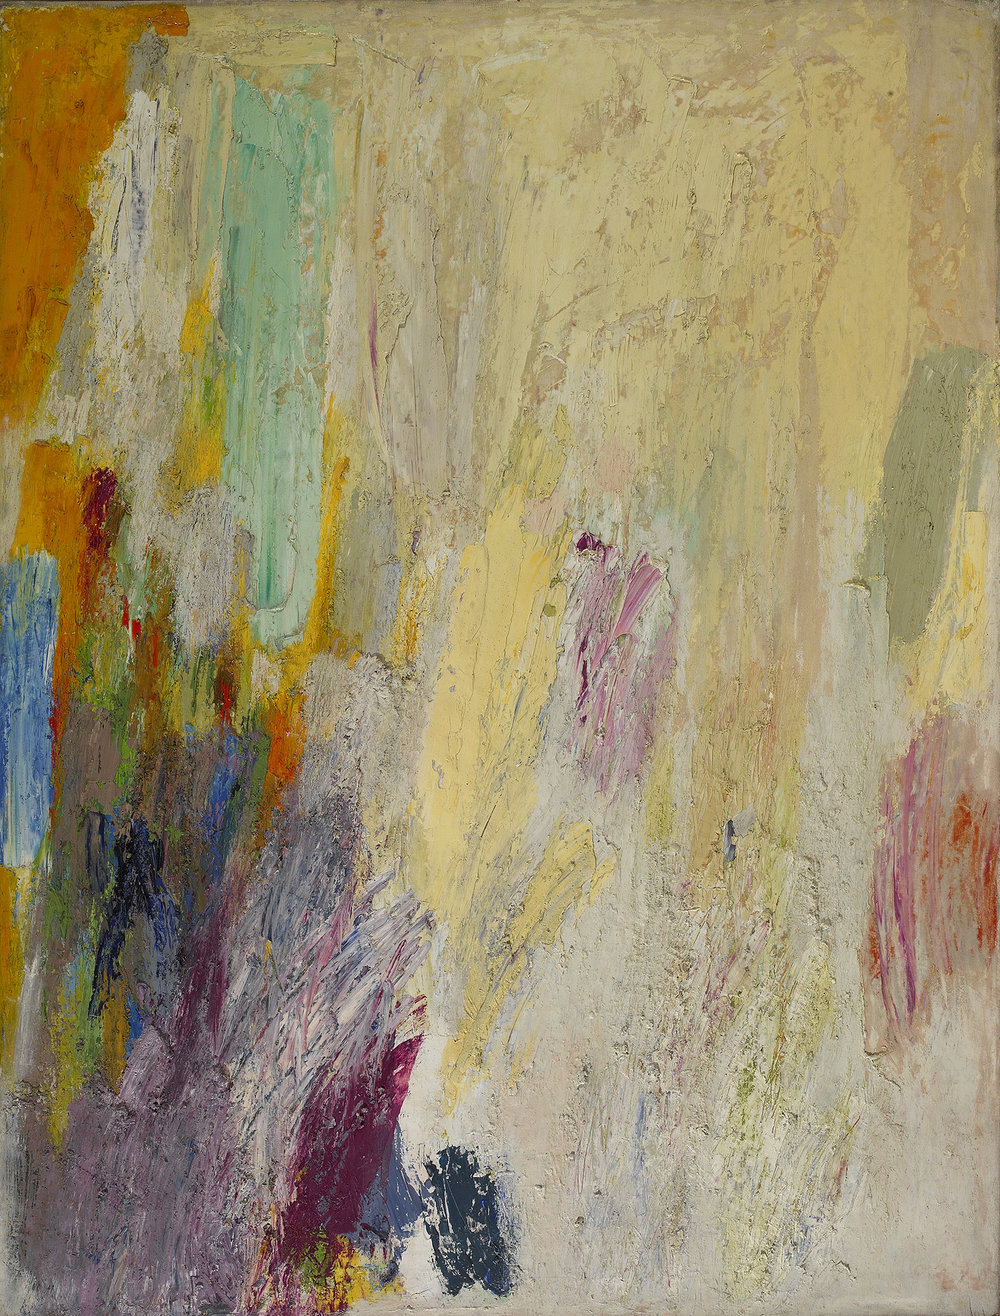 SOLD    Untitled  ,   c. 1950s  , oil on canvas, 48 x 36 inches